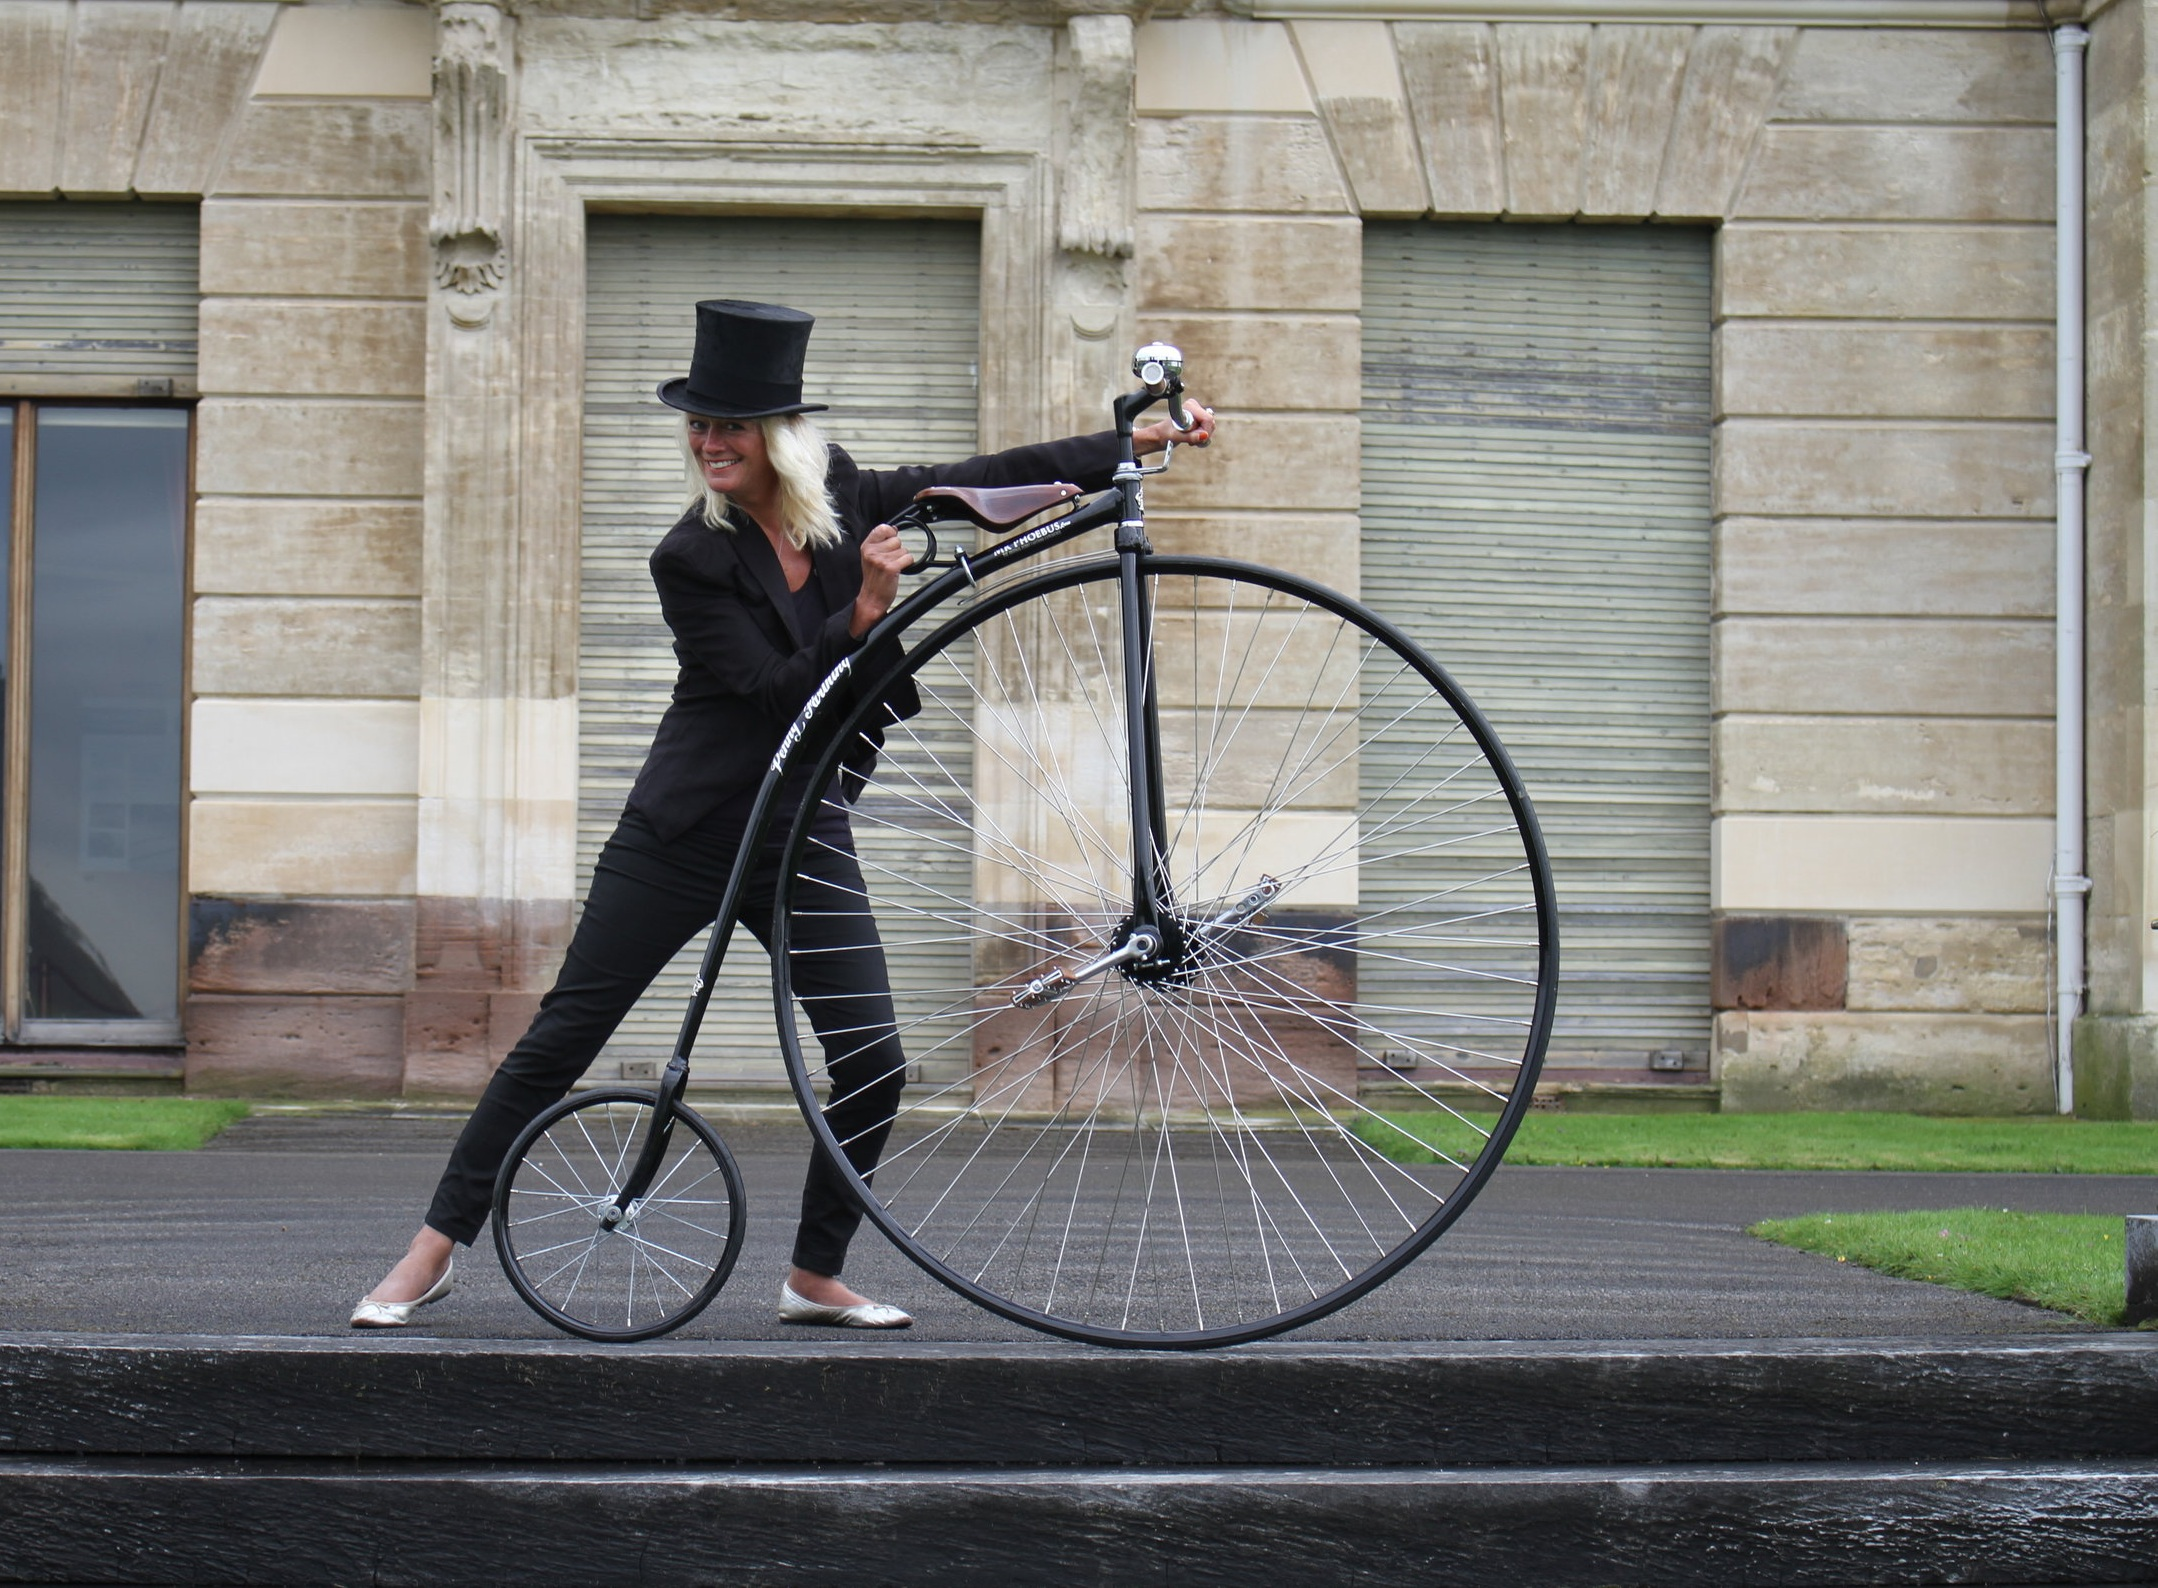 ultimate victorian prop required? - We are ready to talk about your production needs and requirements, with expertise our services are just a few clicks away.What is more iconic than a Victorian Bicycle that towers above the crowds in the background of any period landscape shot!Please get in touch with our team.